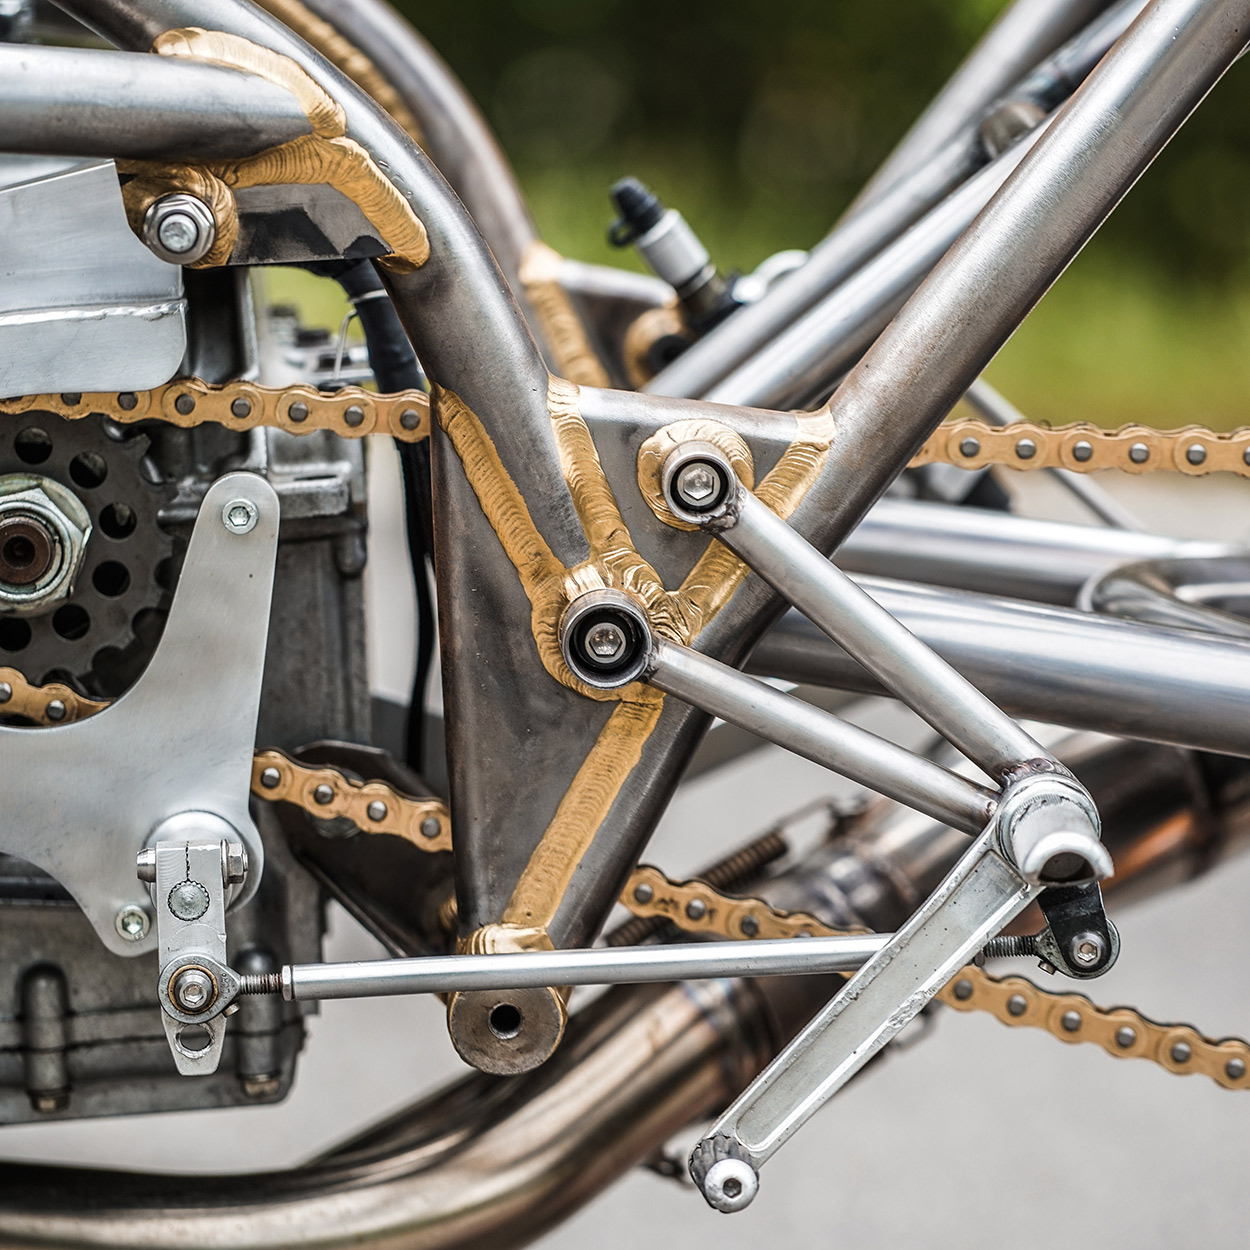 coat was taken off the manganese bronze weld seams showed their beautiful golden shine the design concept became obvious let the harris frame shine - Motorcycle Picture Frame